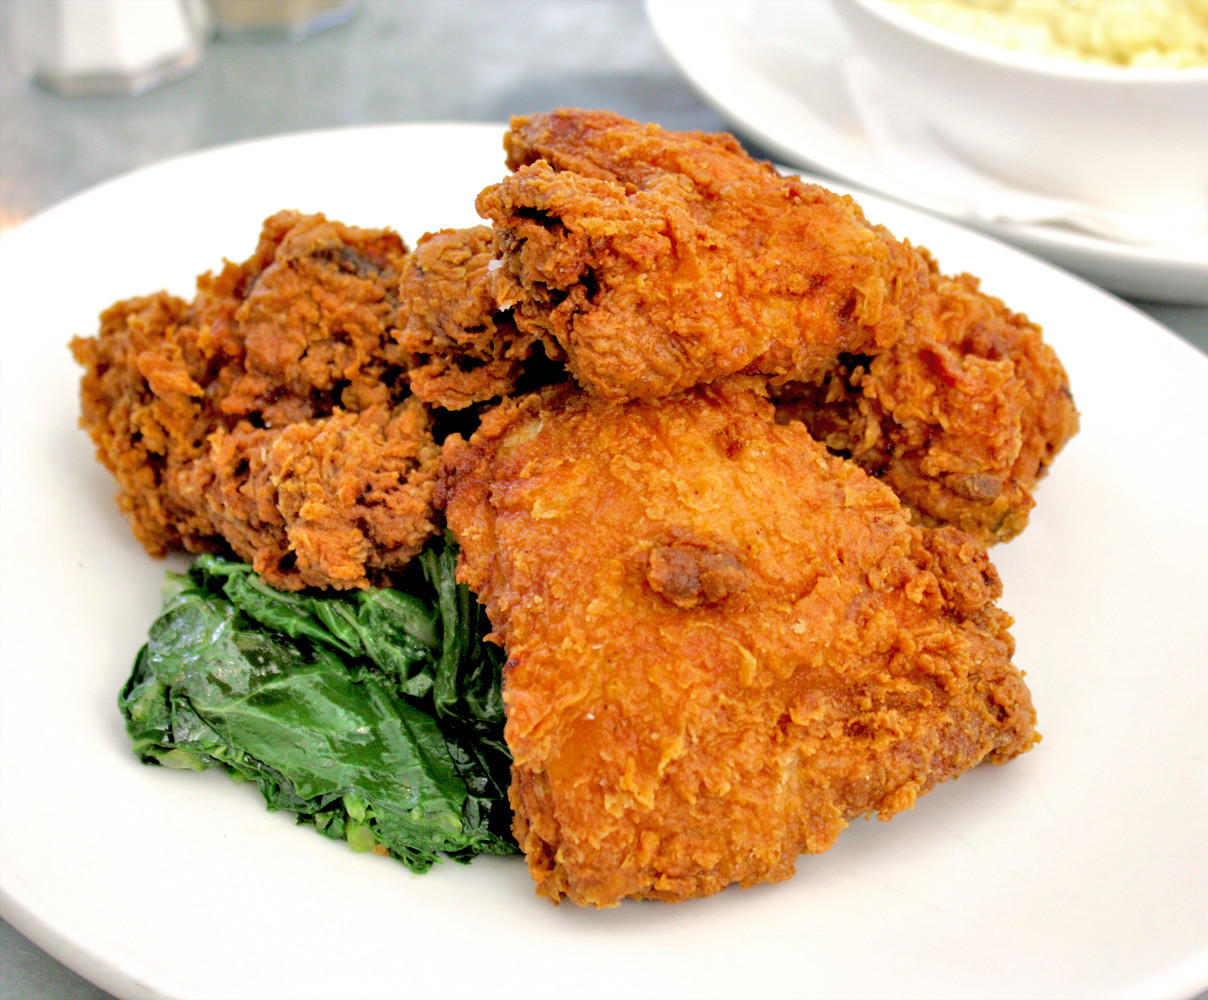 Fried Chicken Dinner  The Fried Chicken Dinner Boon Fly Café Napa • The